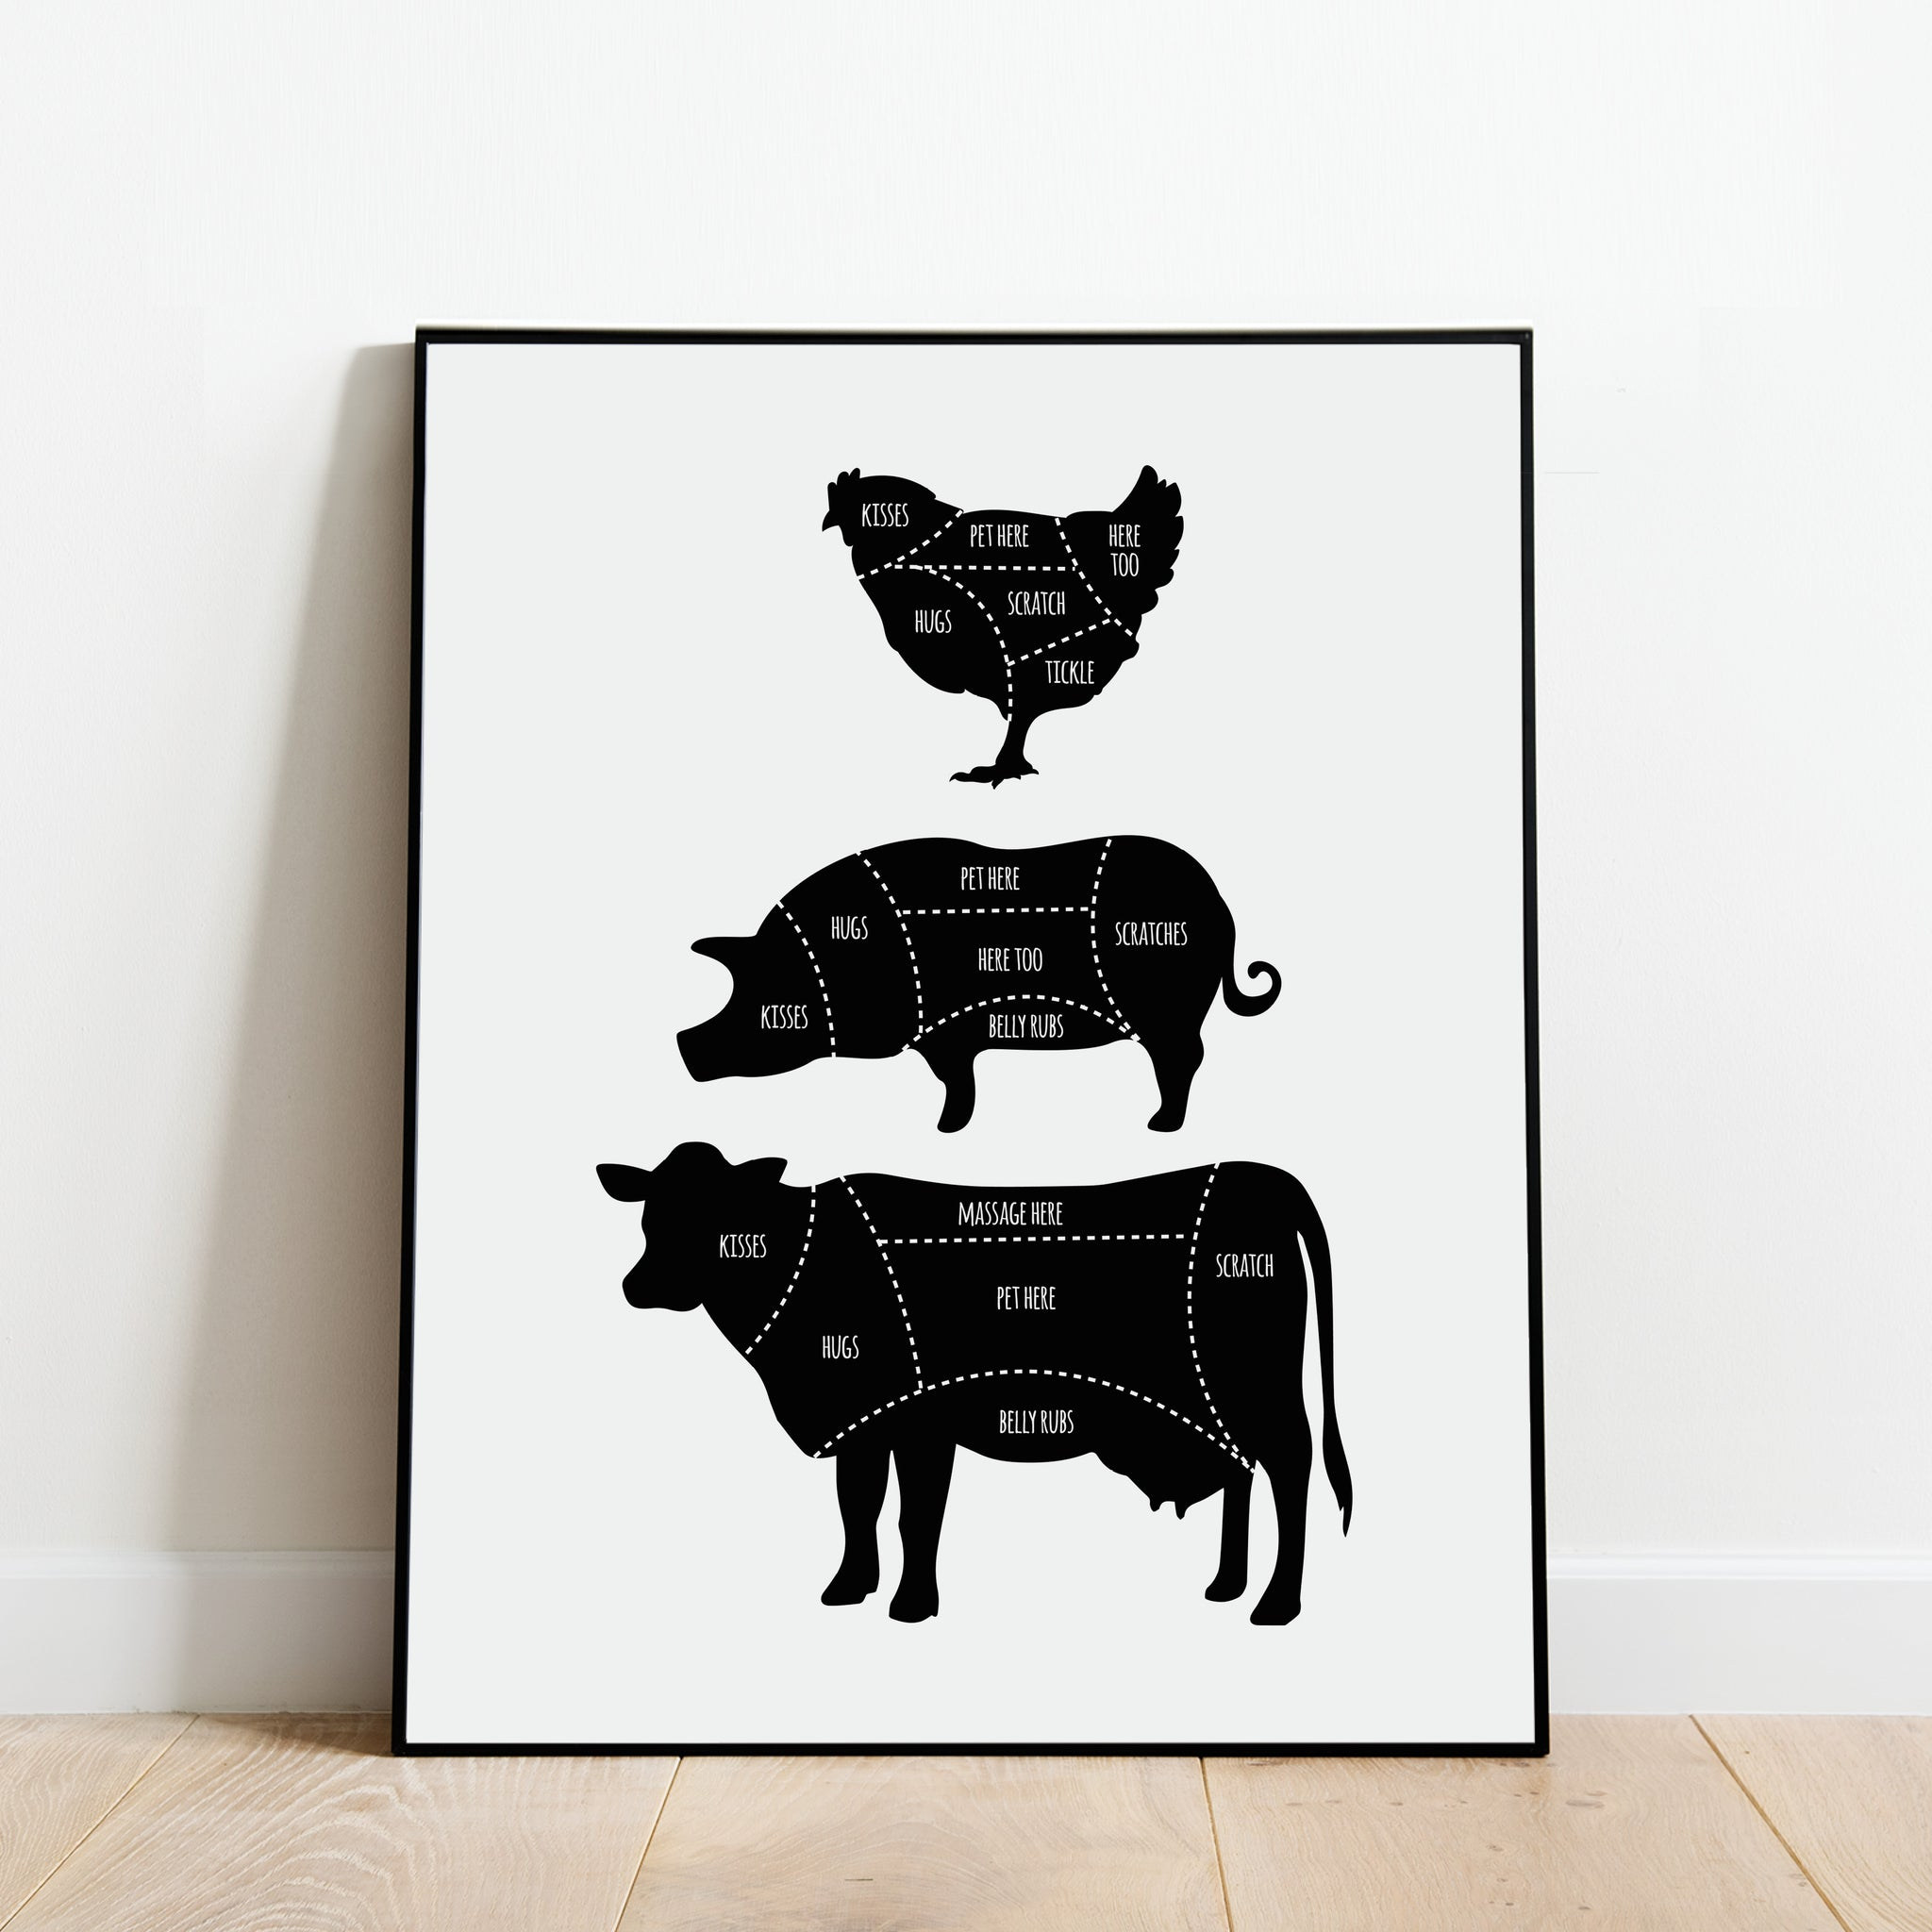 The Vegan Butcher Print - A cruelty-free vegan poster by Culver and Cambridge